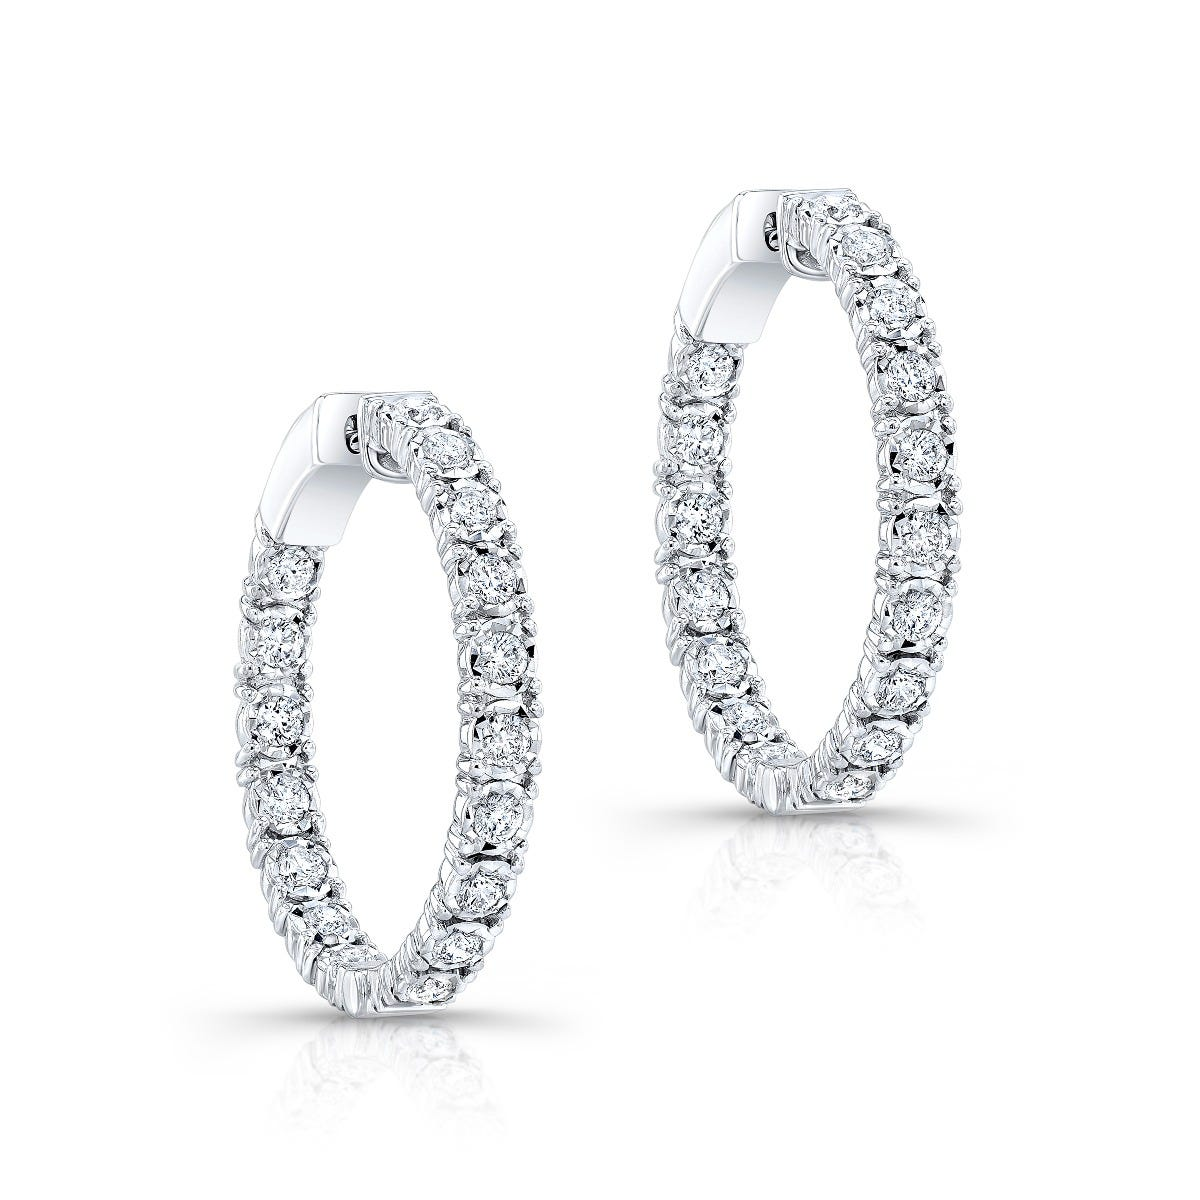 Diamond 1ctw. In & Out Hoop Earrings in 14k White Gold